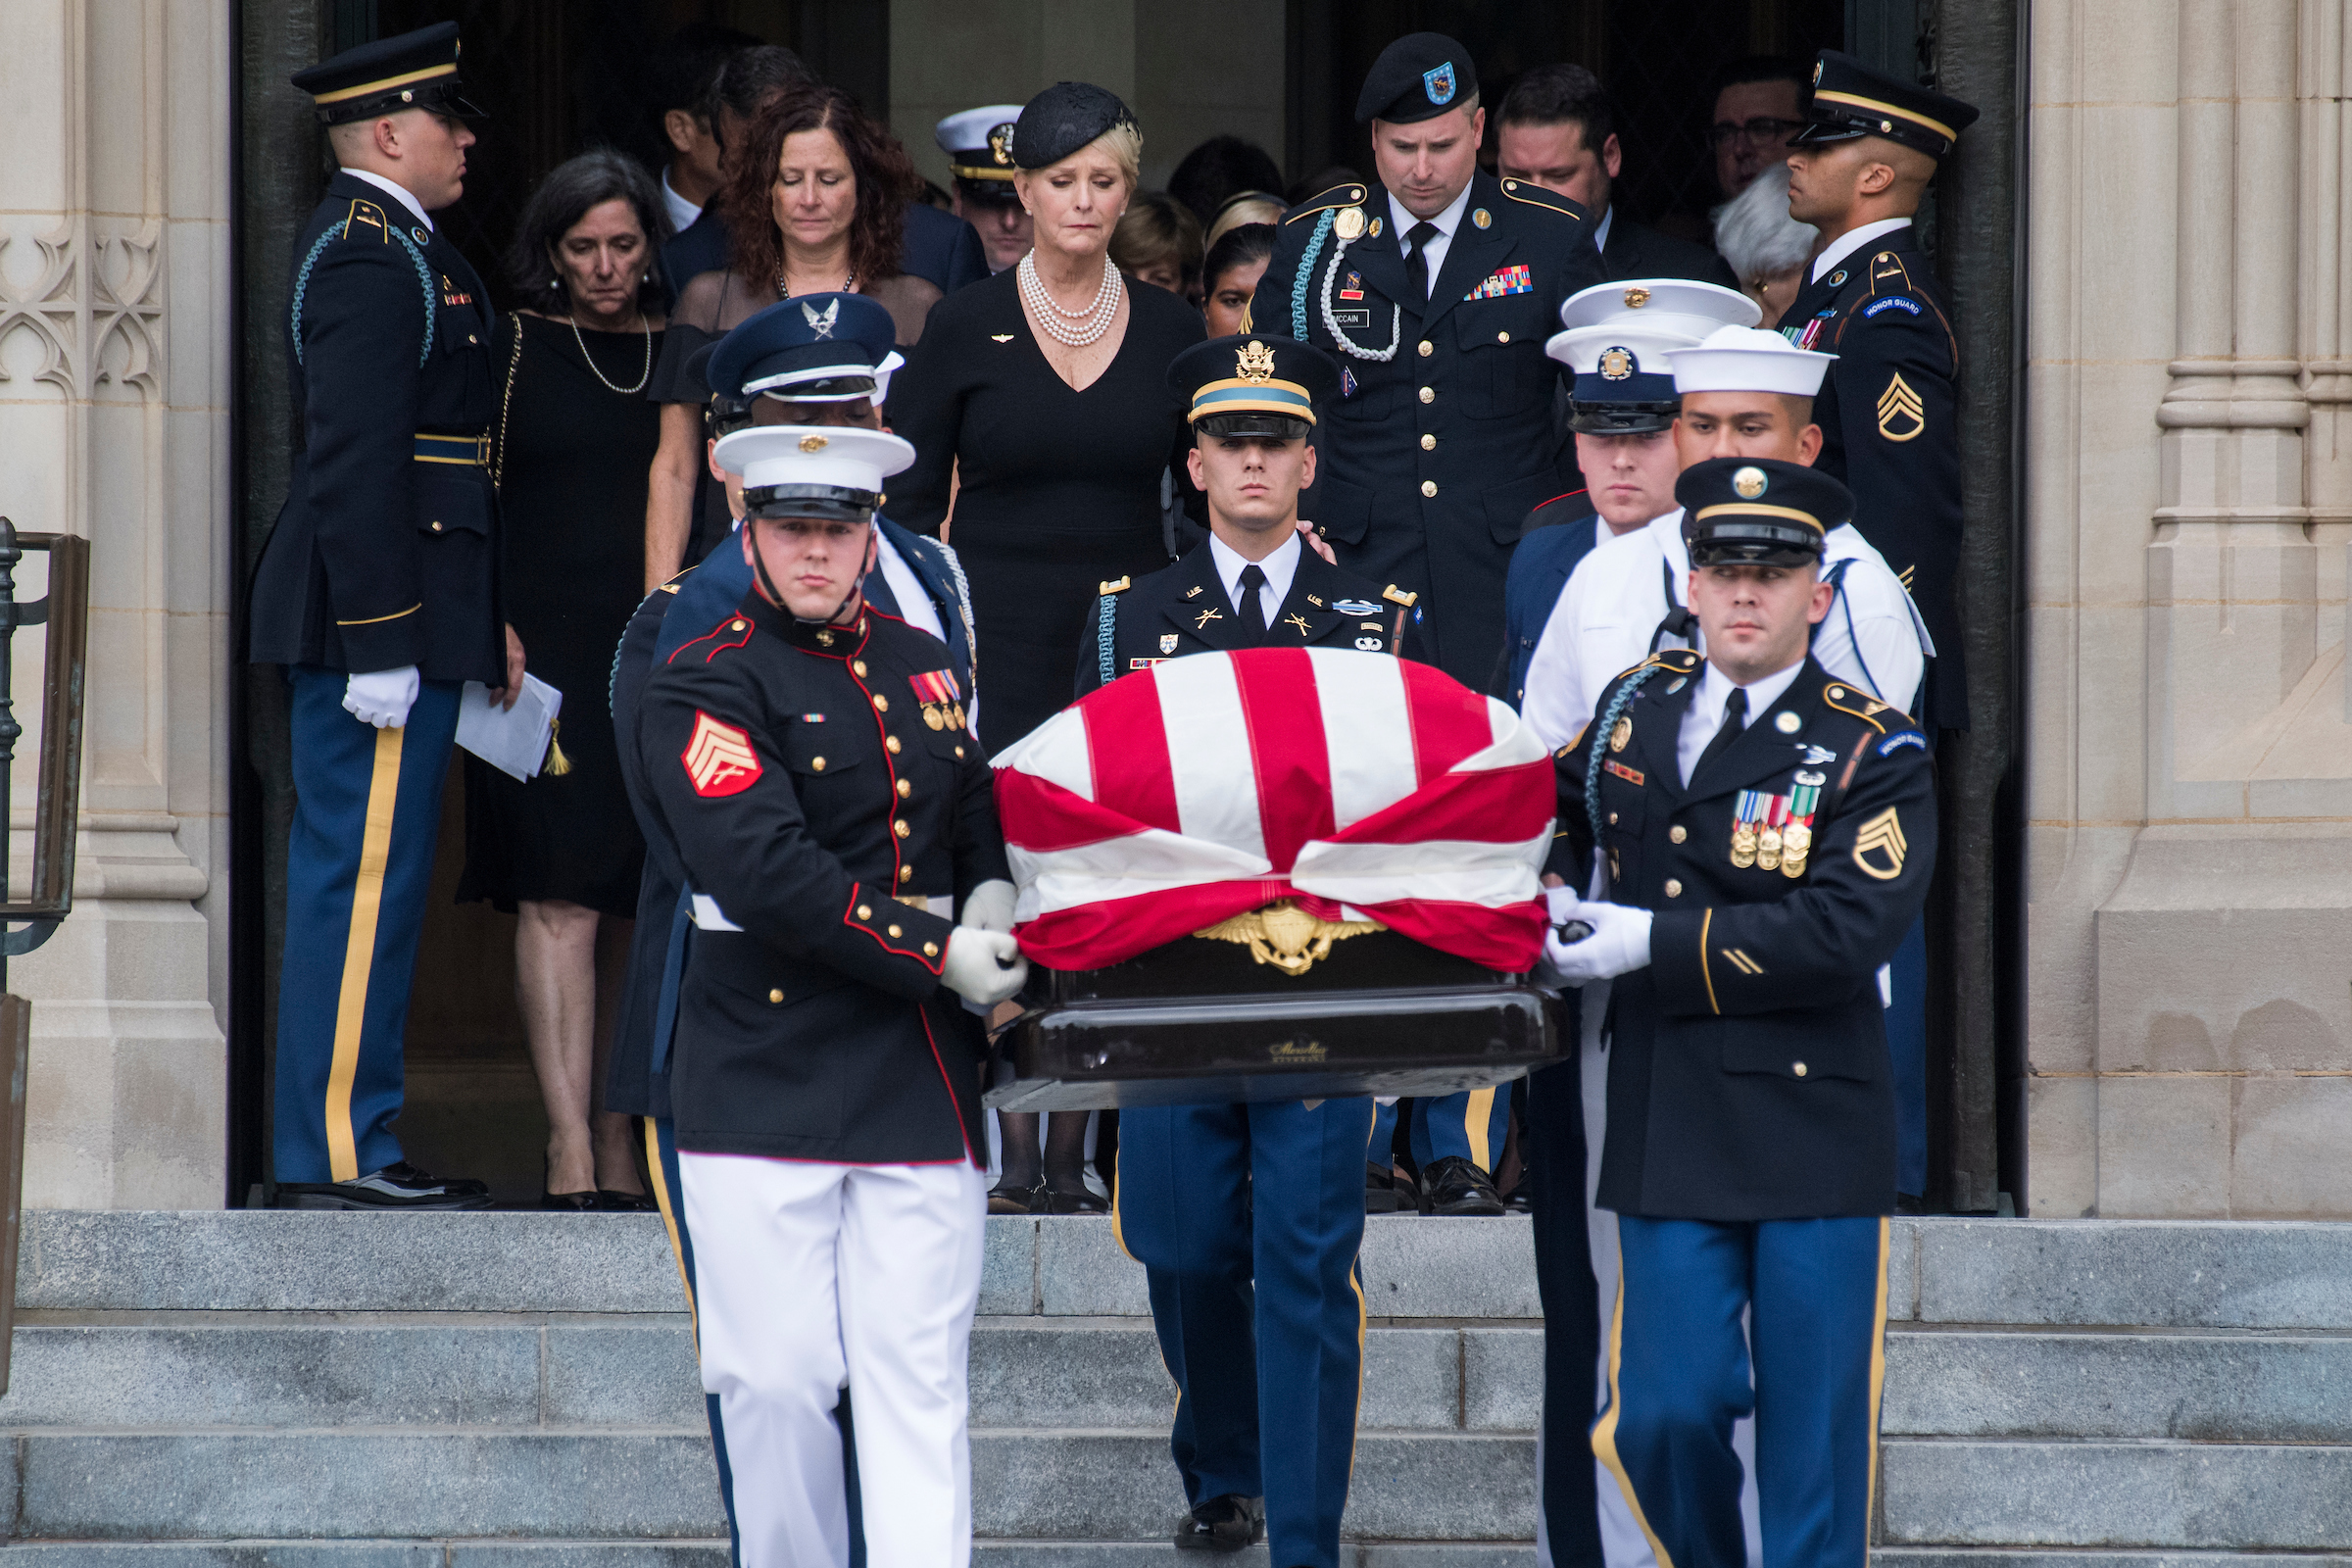 UNITED STATES - SEPTEMBER 1: The casket of late Sen. John McCain, R-Ariz., is carried by an Honor Guard out of the Washington National Cathedral after his funeral on September 1, 2018. His wife, Cindy, and son Jimmy, appear in the background. (Photo By Tom Williams/CQ Roll Call)